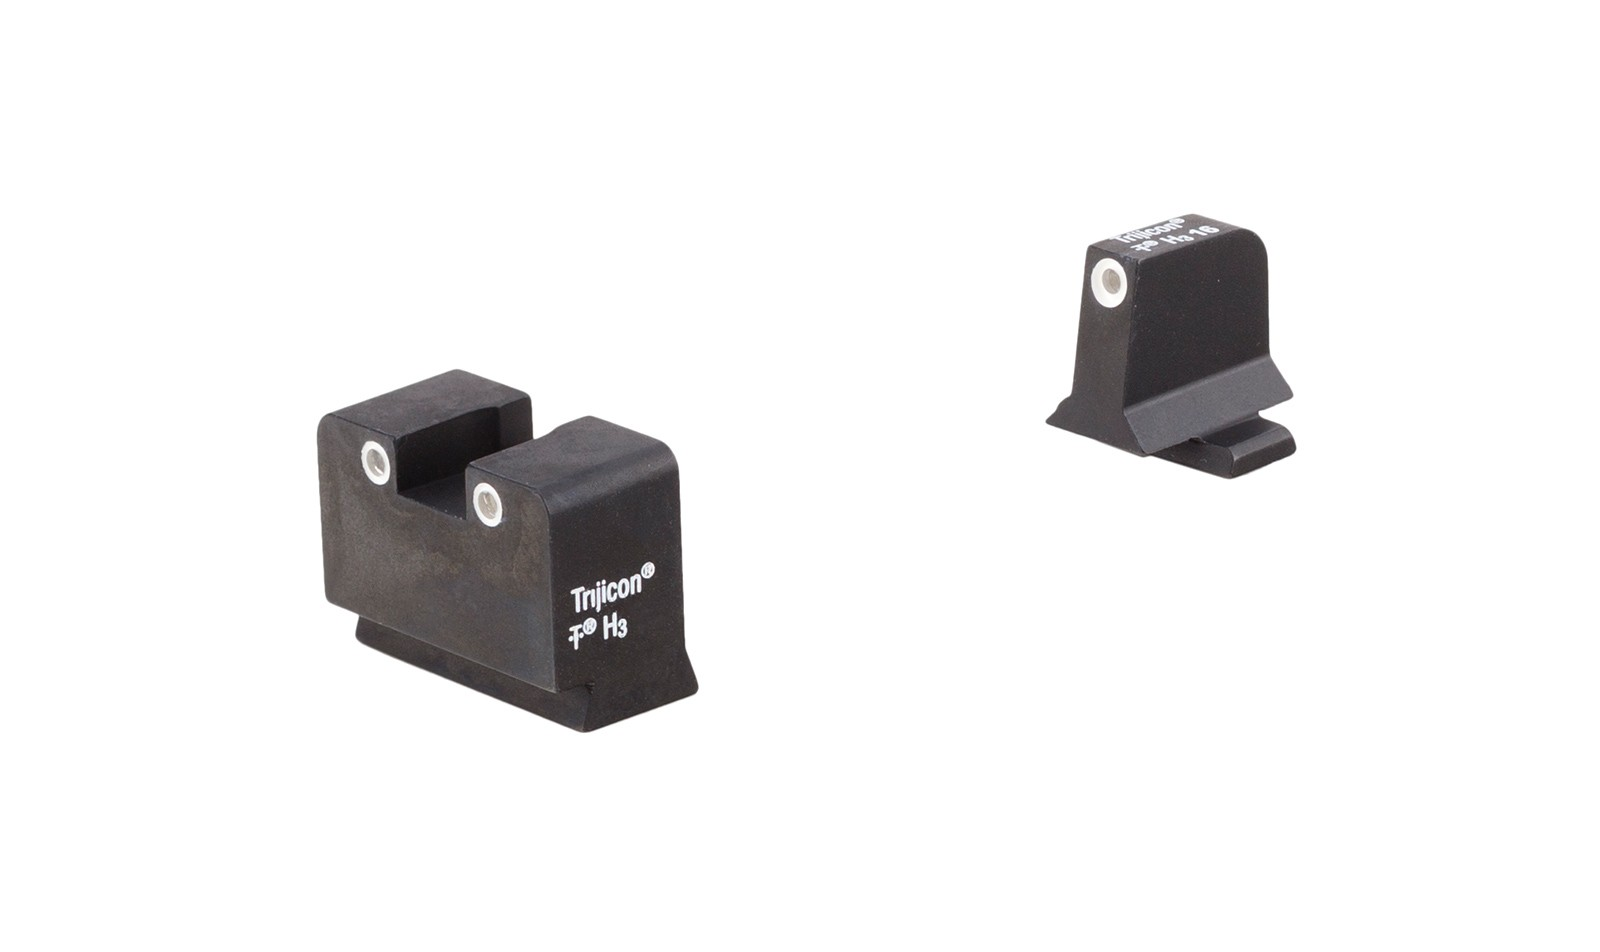 Trijicon Bright & Tough™ Suppressor Night Sights - FN509